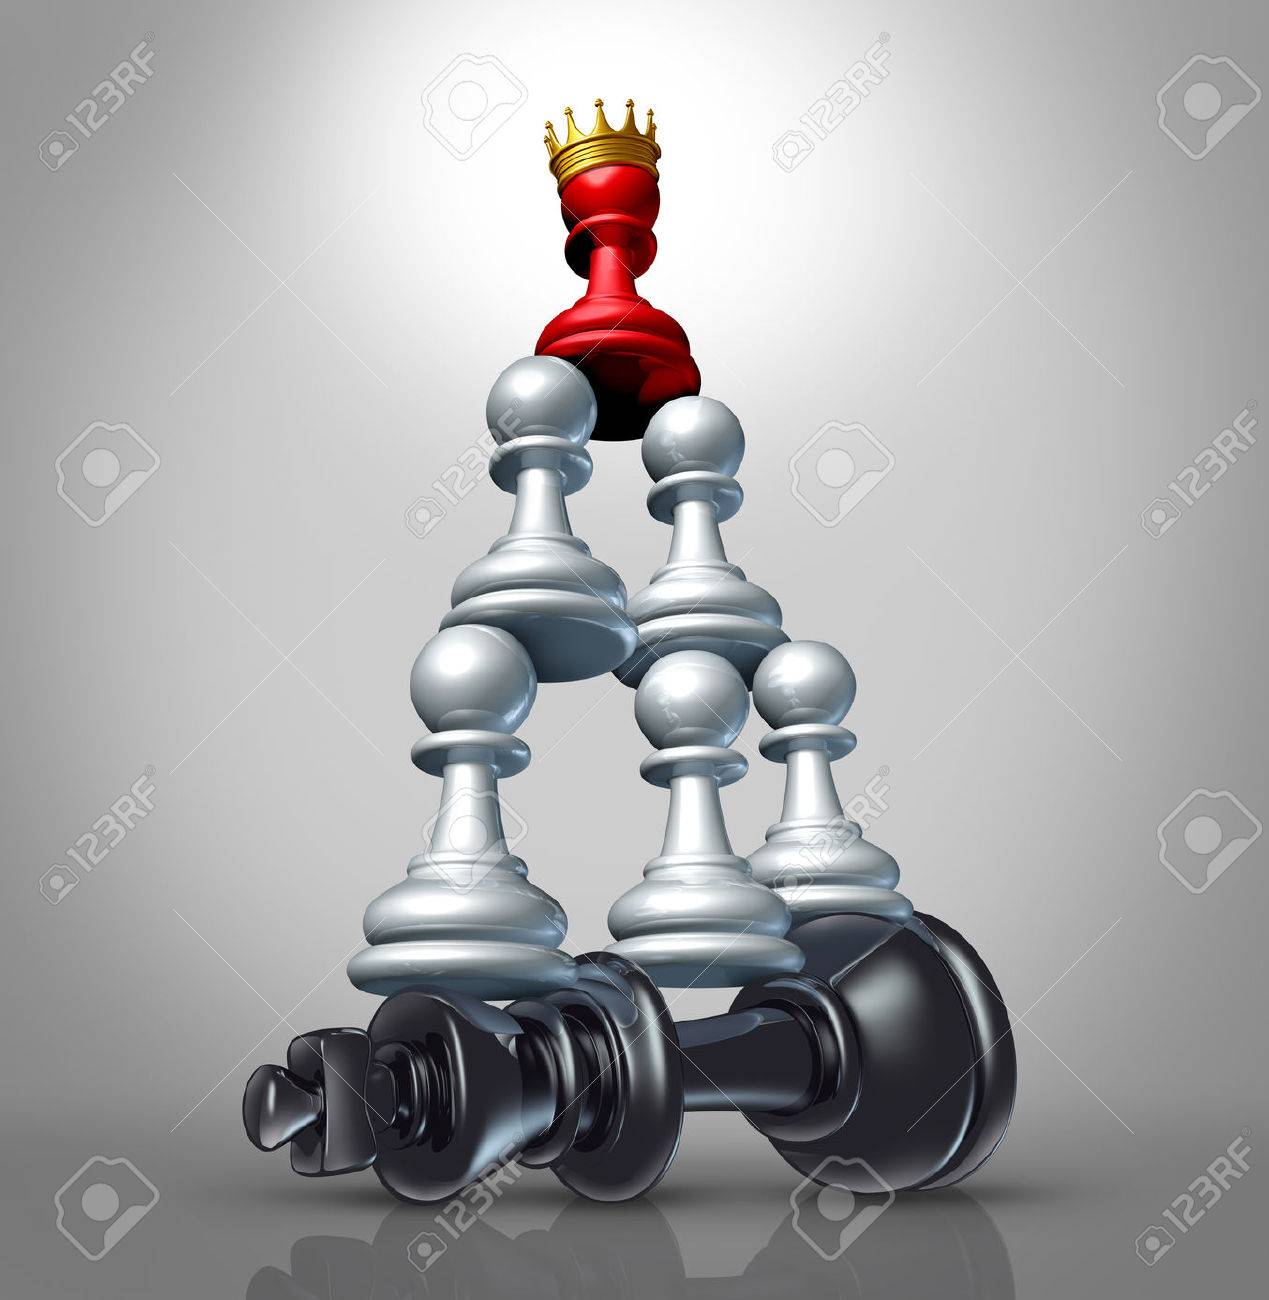 Collaboration strategy and team victory as a business concept with a chess game metaphor for changing market leadership by teaming up in partnership and working together to dominate a powerful competitor Stock Photo - 23843281